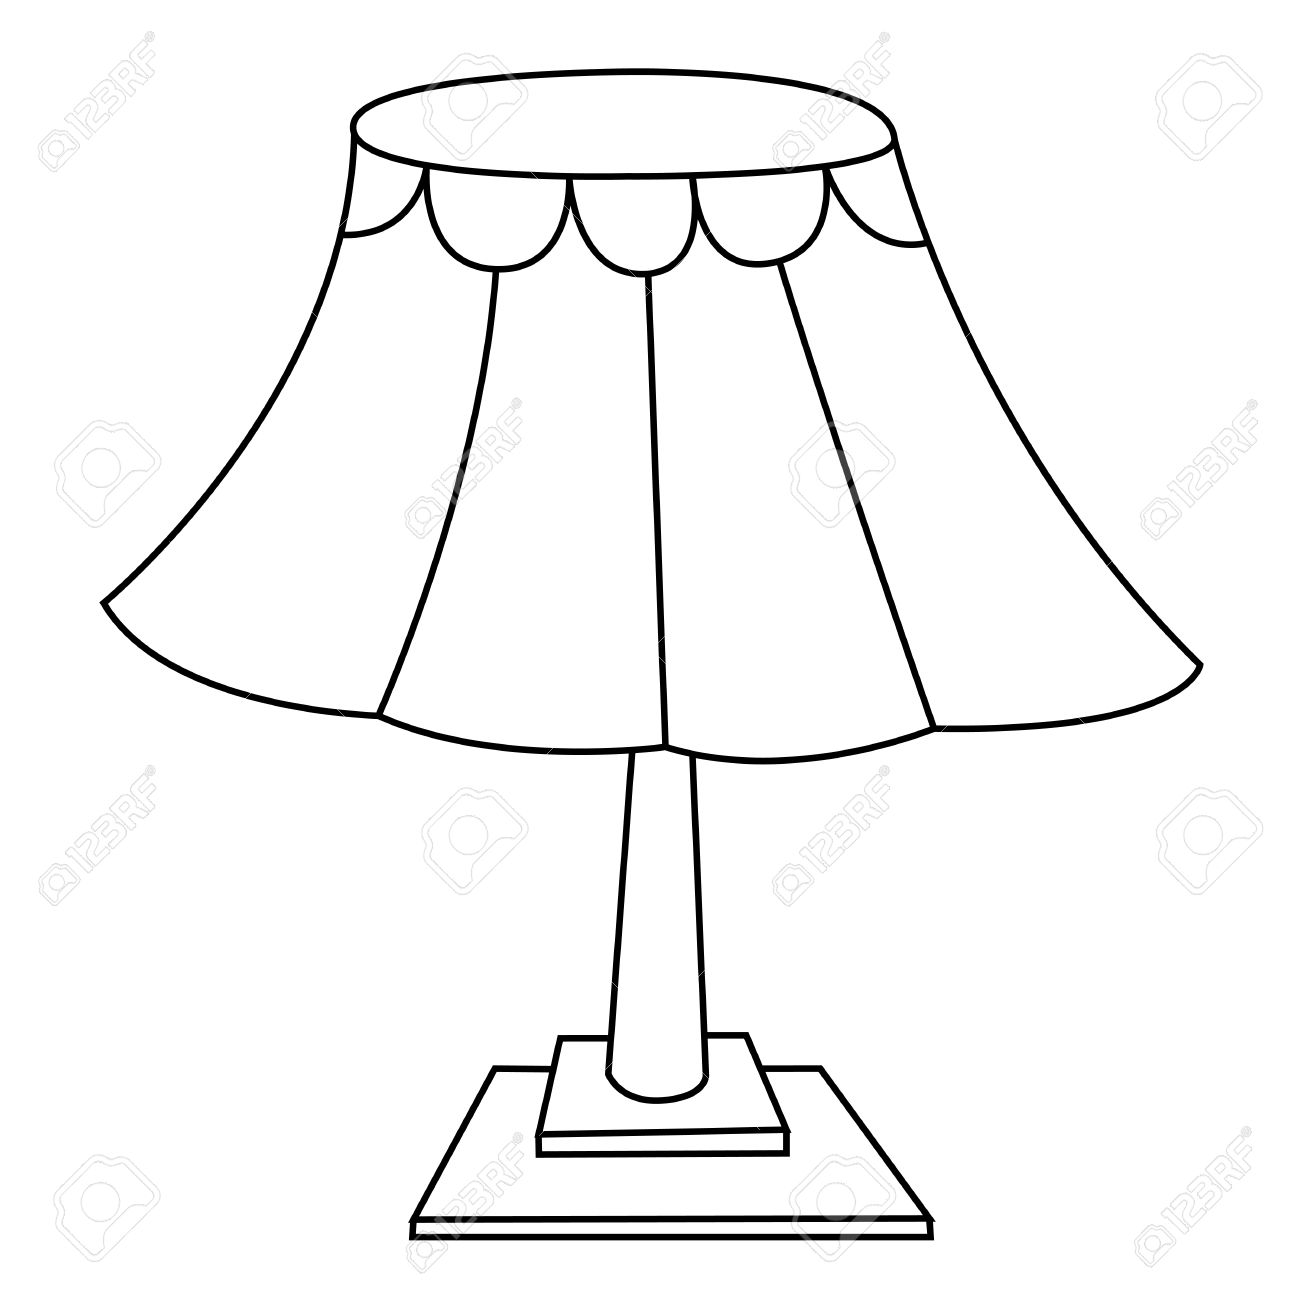 Black And White Lamp Lamp Clipart Station